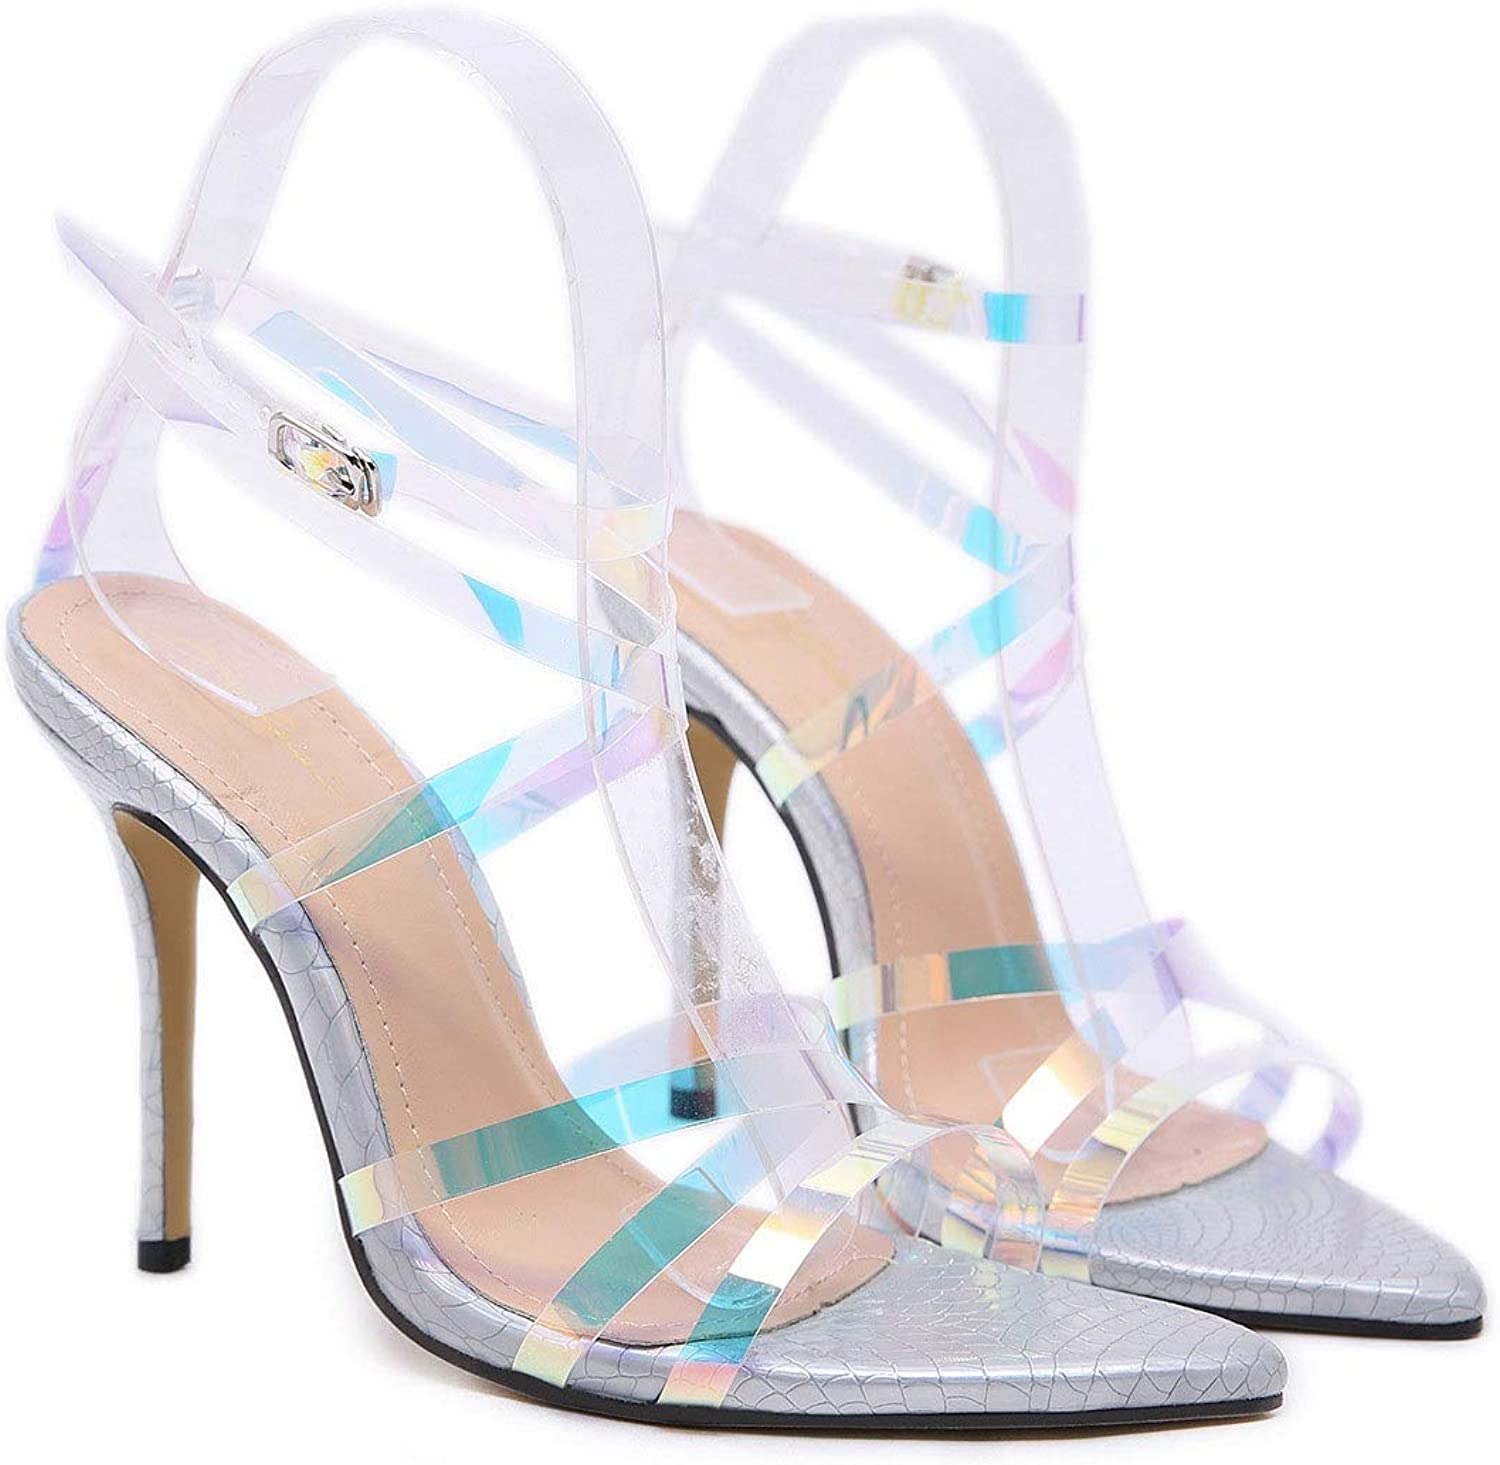 Women's High Heel Sandals with Transparent Stiletto Pointed Sandals (color   Silver, Size   6 US)